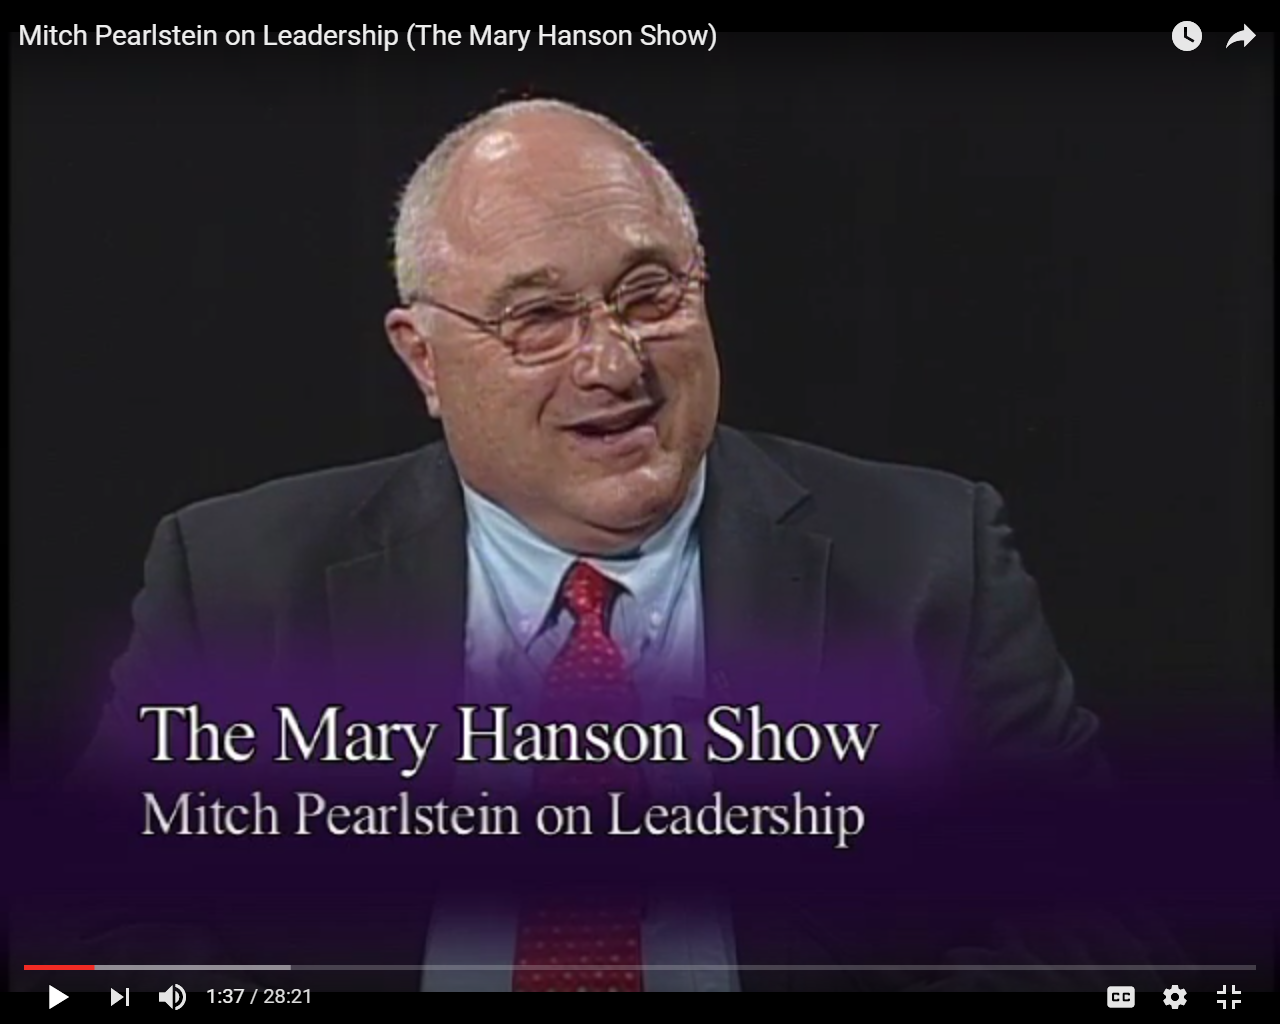 mitch-on-mary-hanson-show-7-16